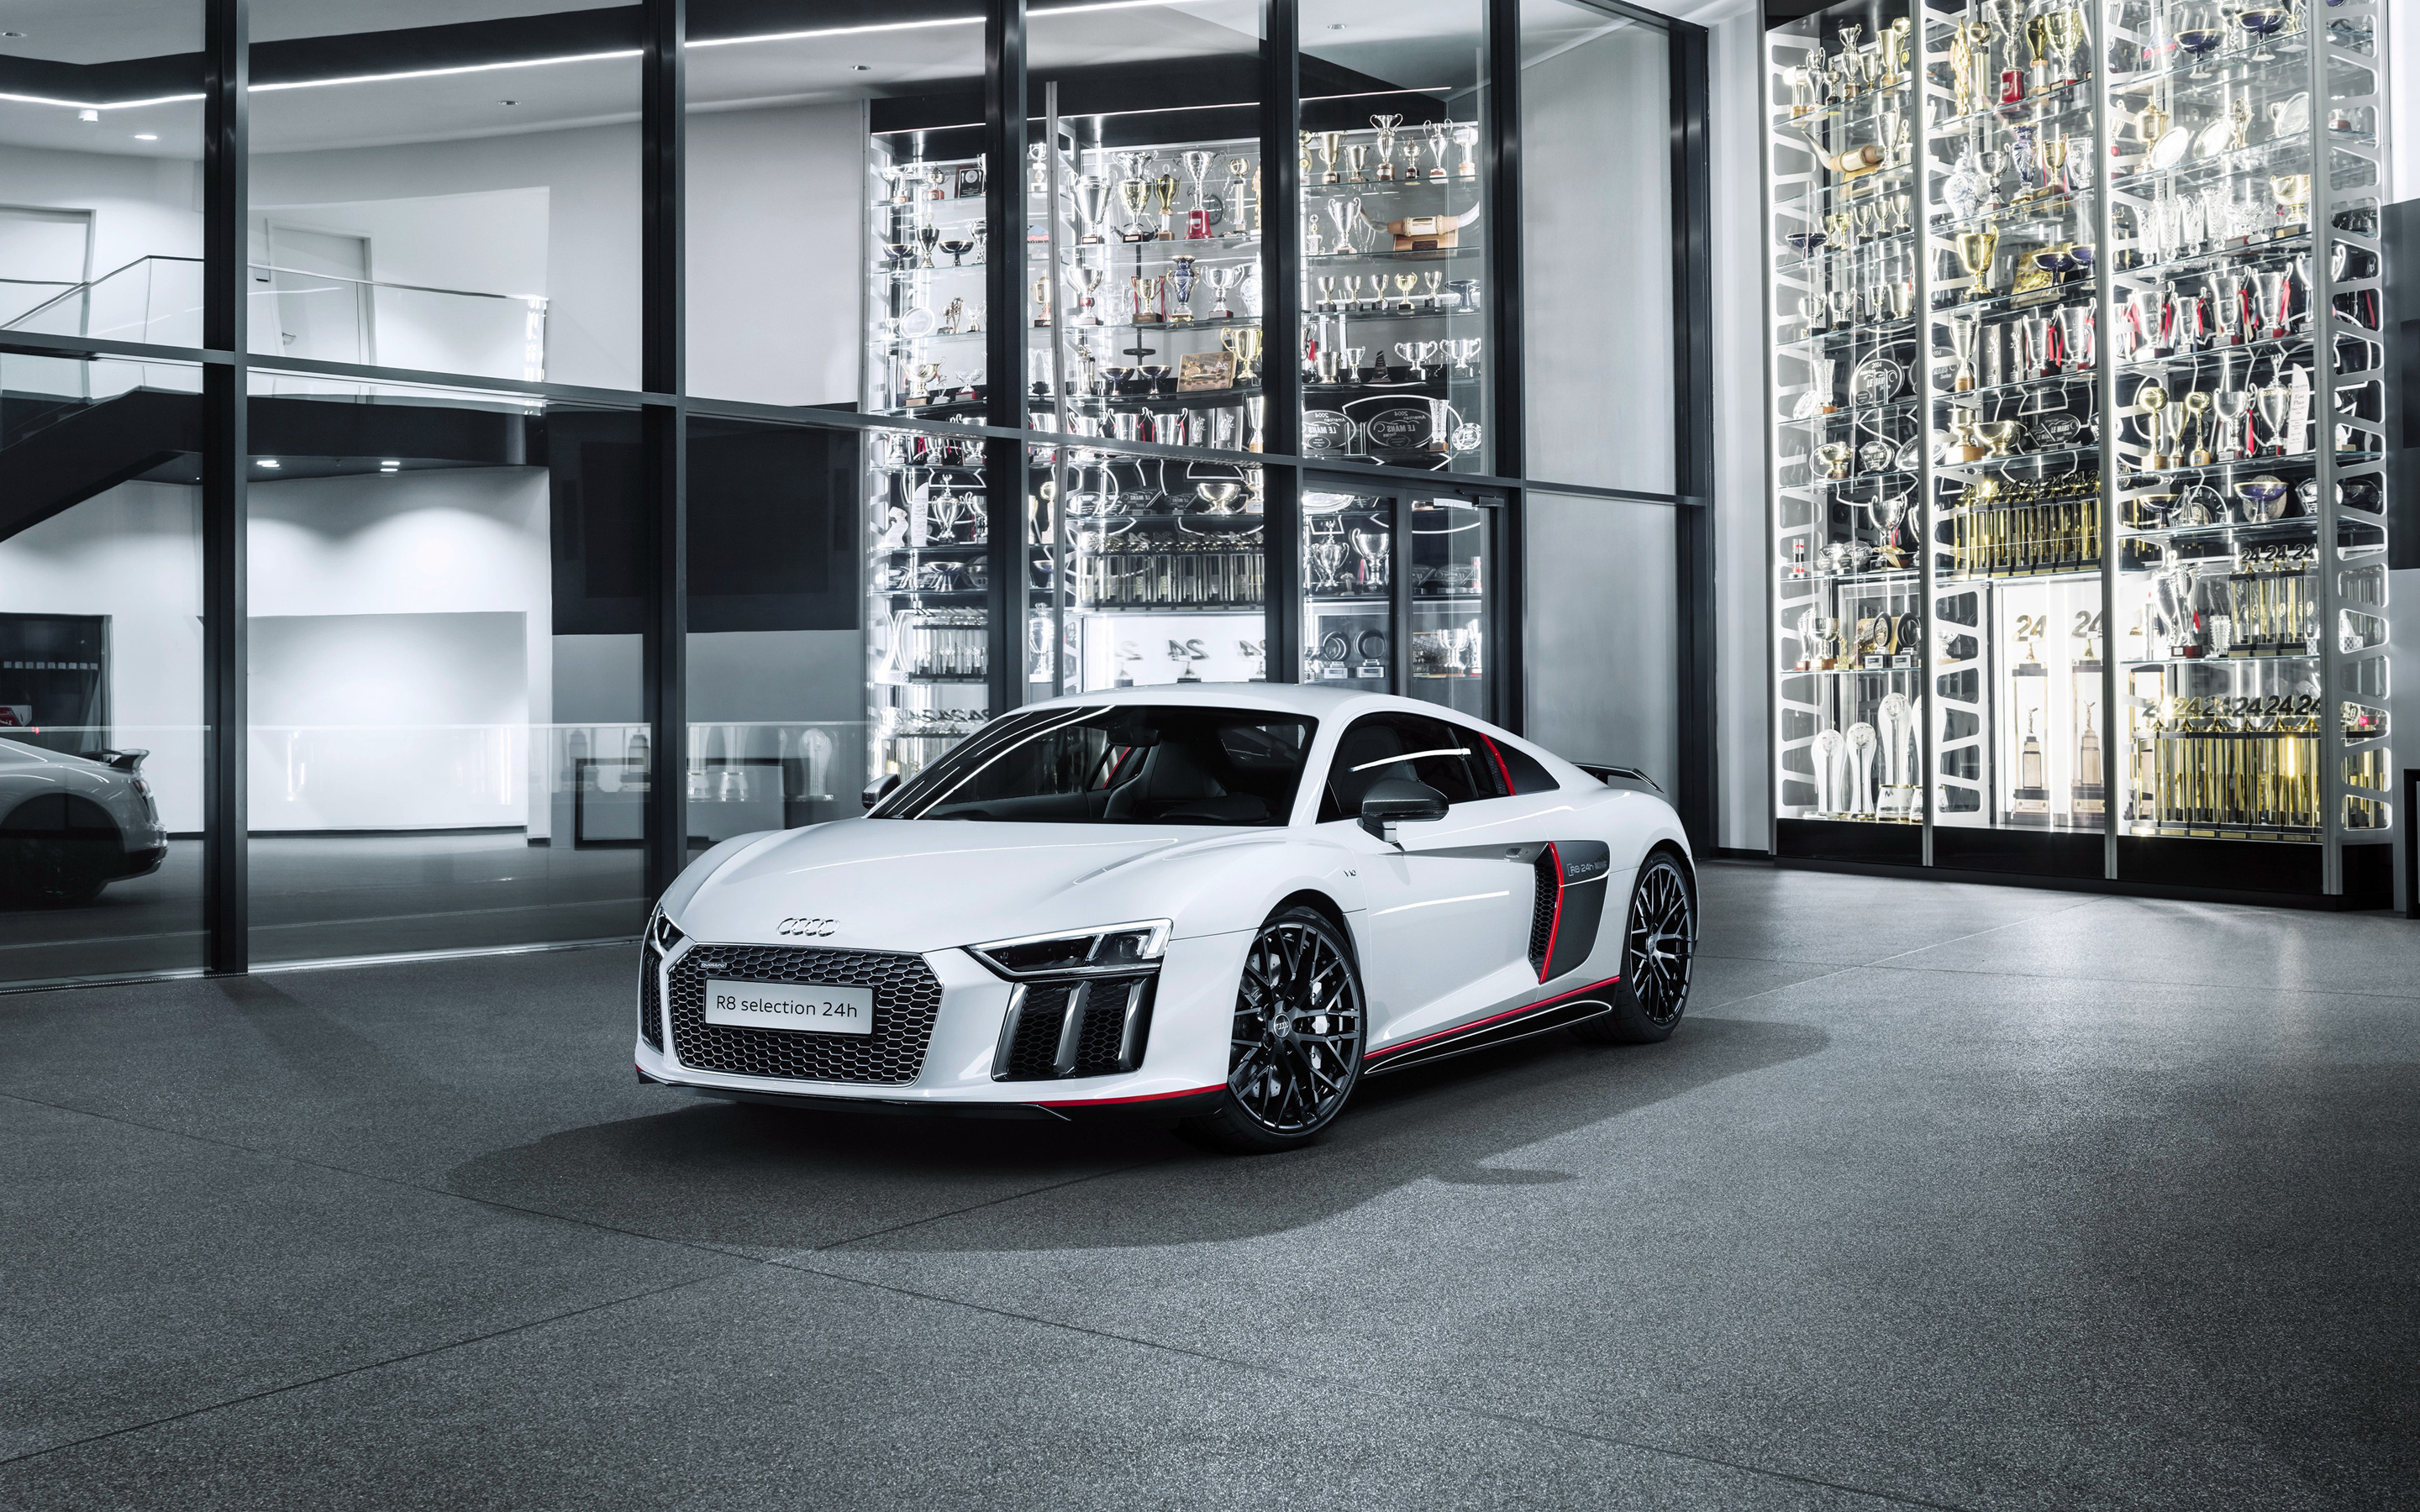 2017 Audi R8 Coupe V10 Plus Selection 24h Edition Wallpaper Hd Car Wallpapers Id 6556